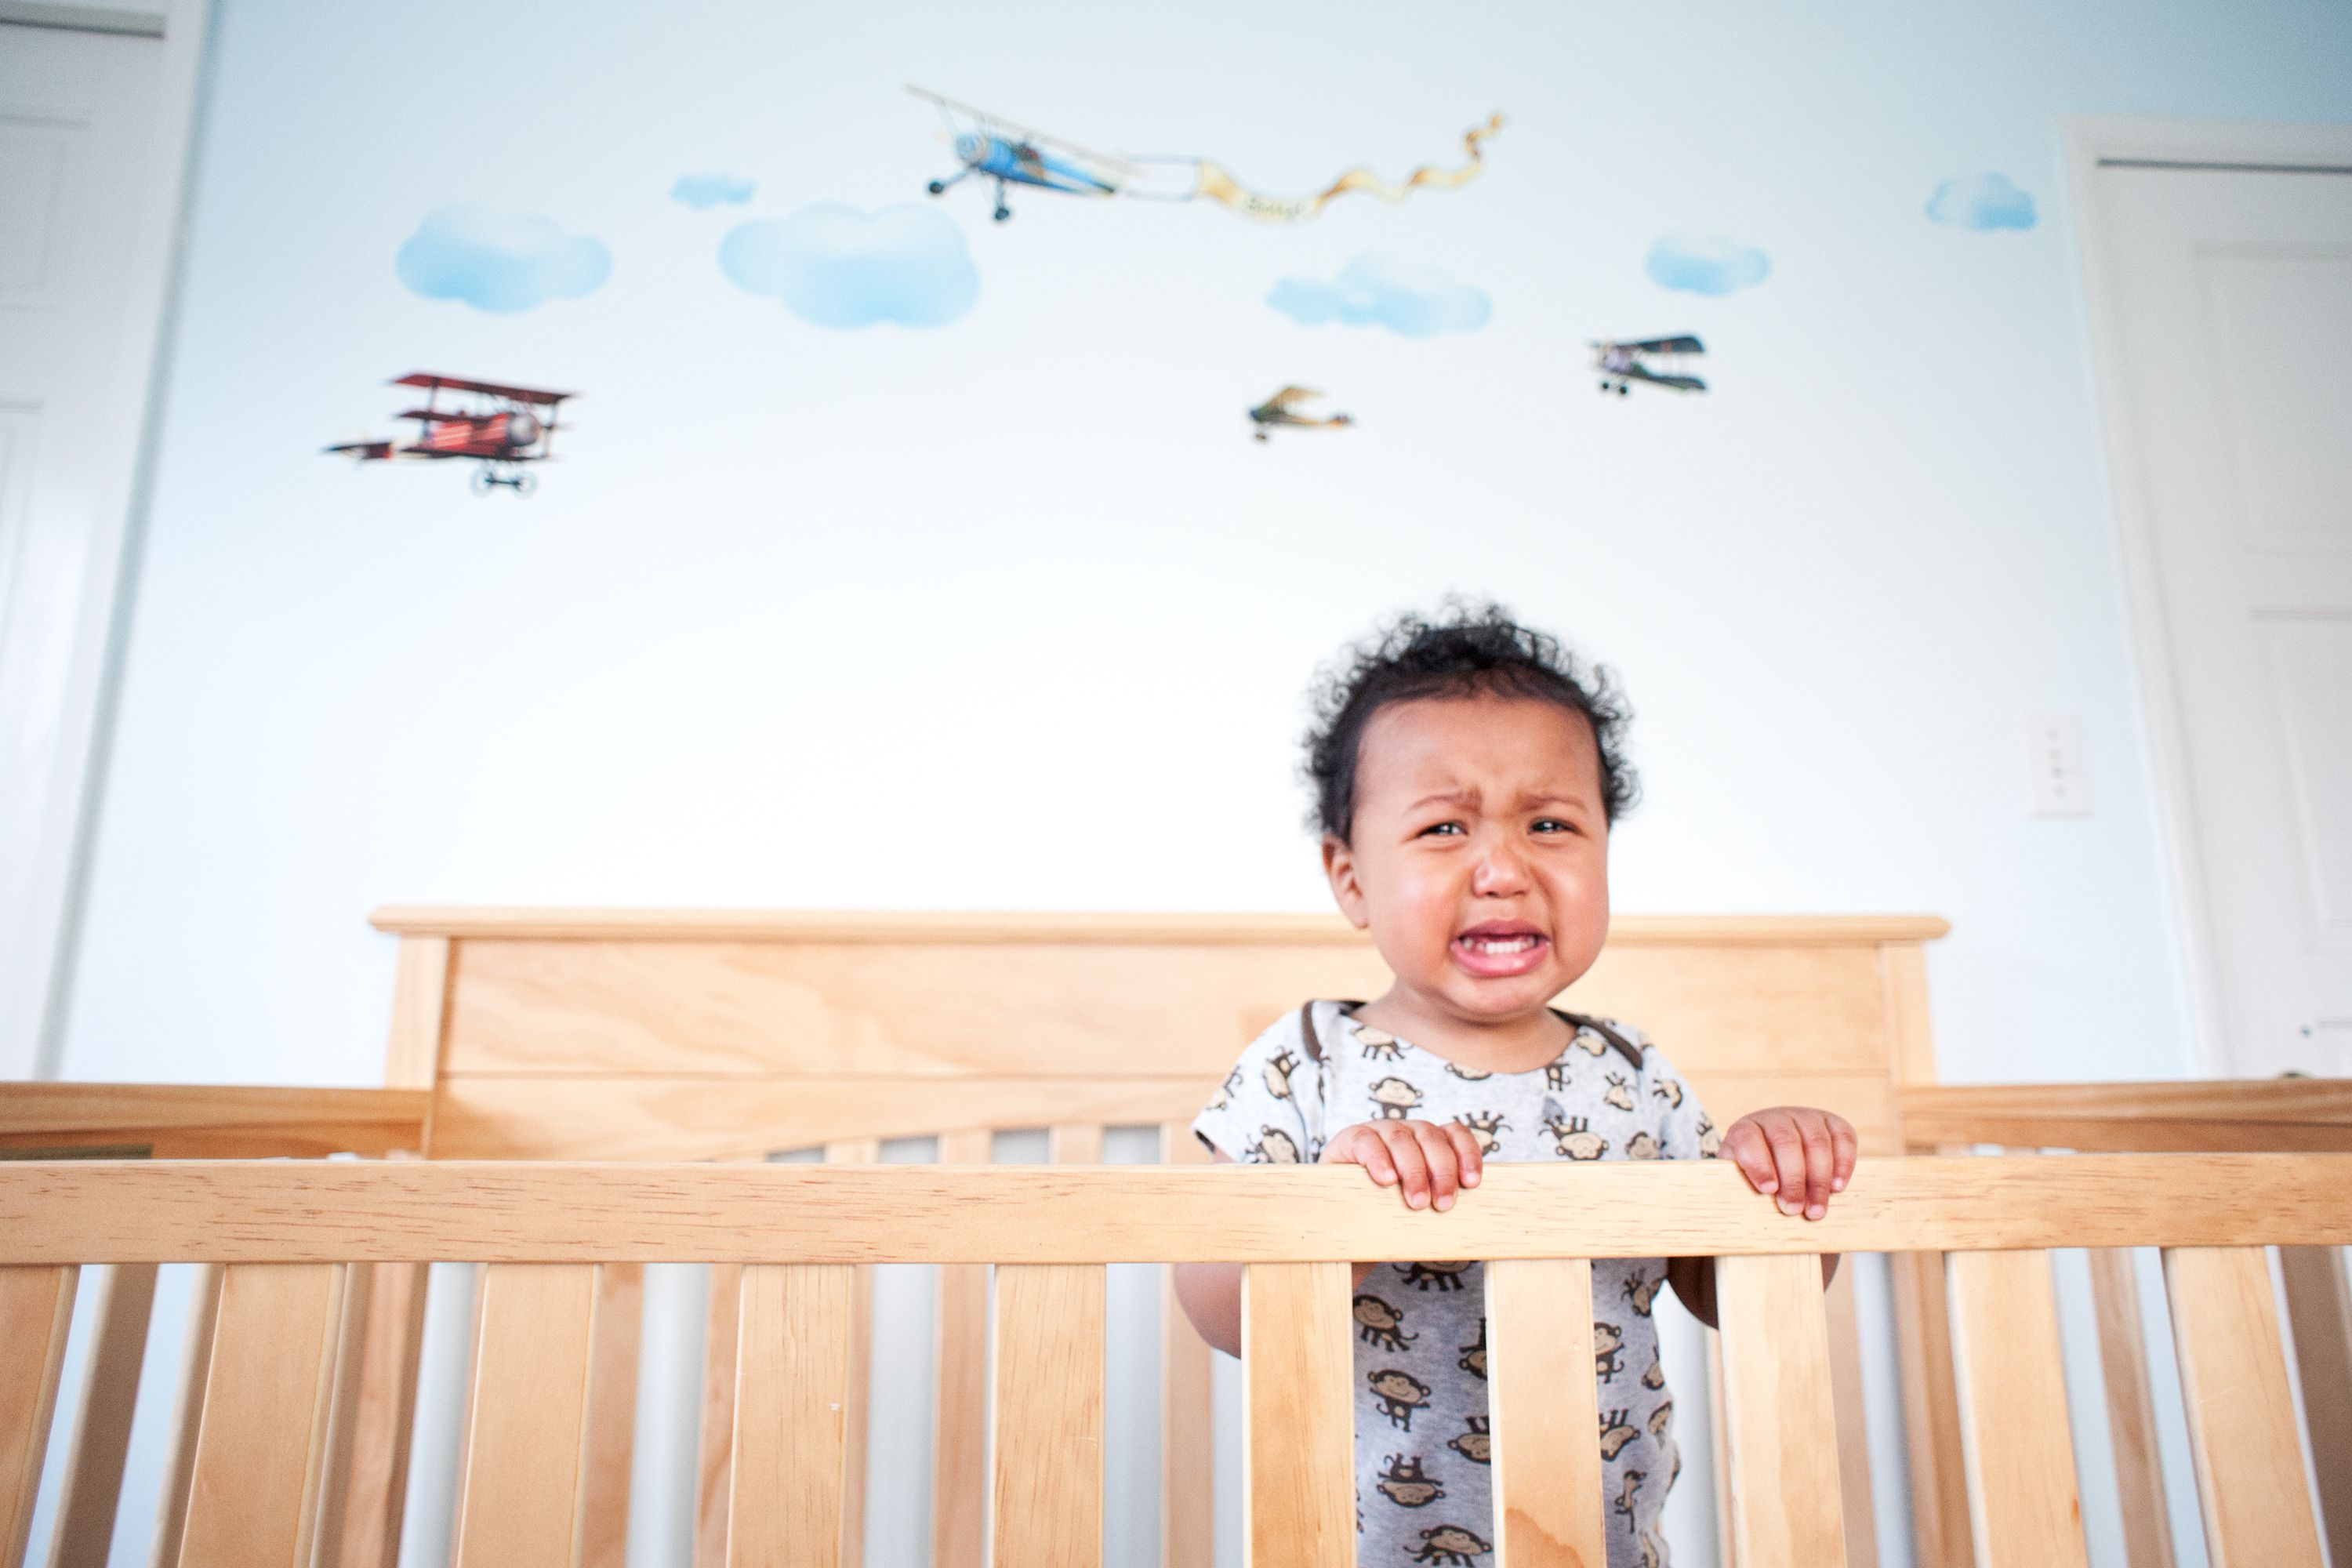 The 6 Best Toddler Alarm Clocks to Buy in 2019